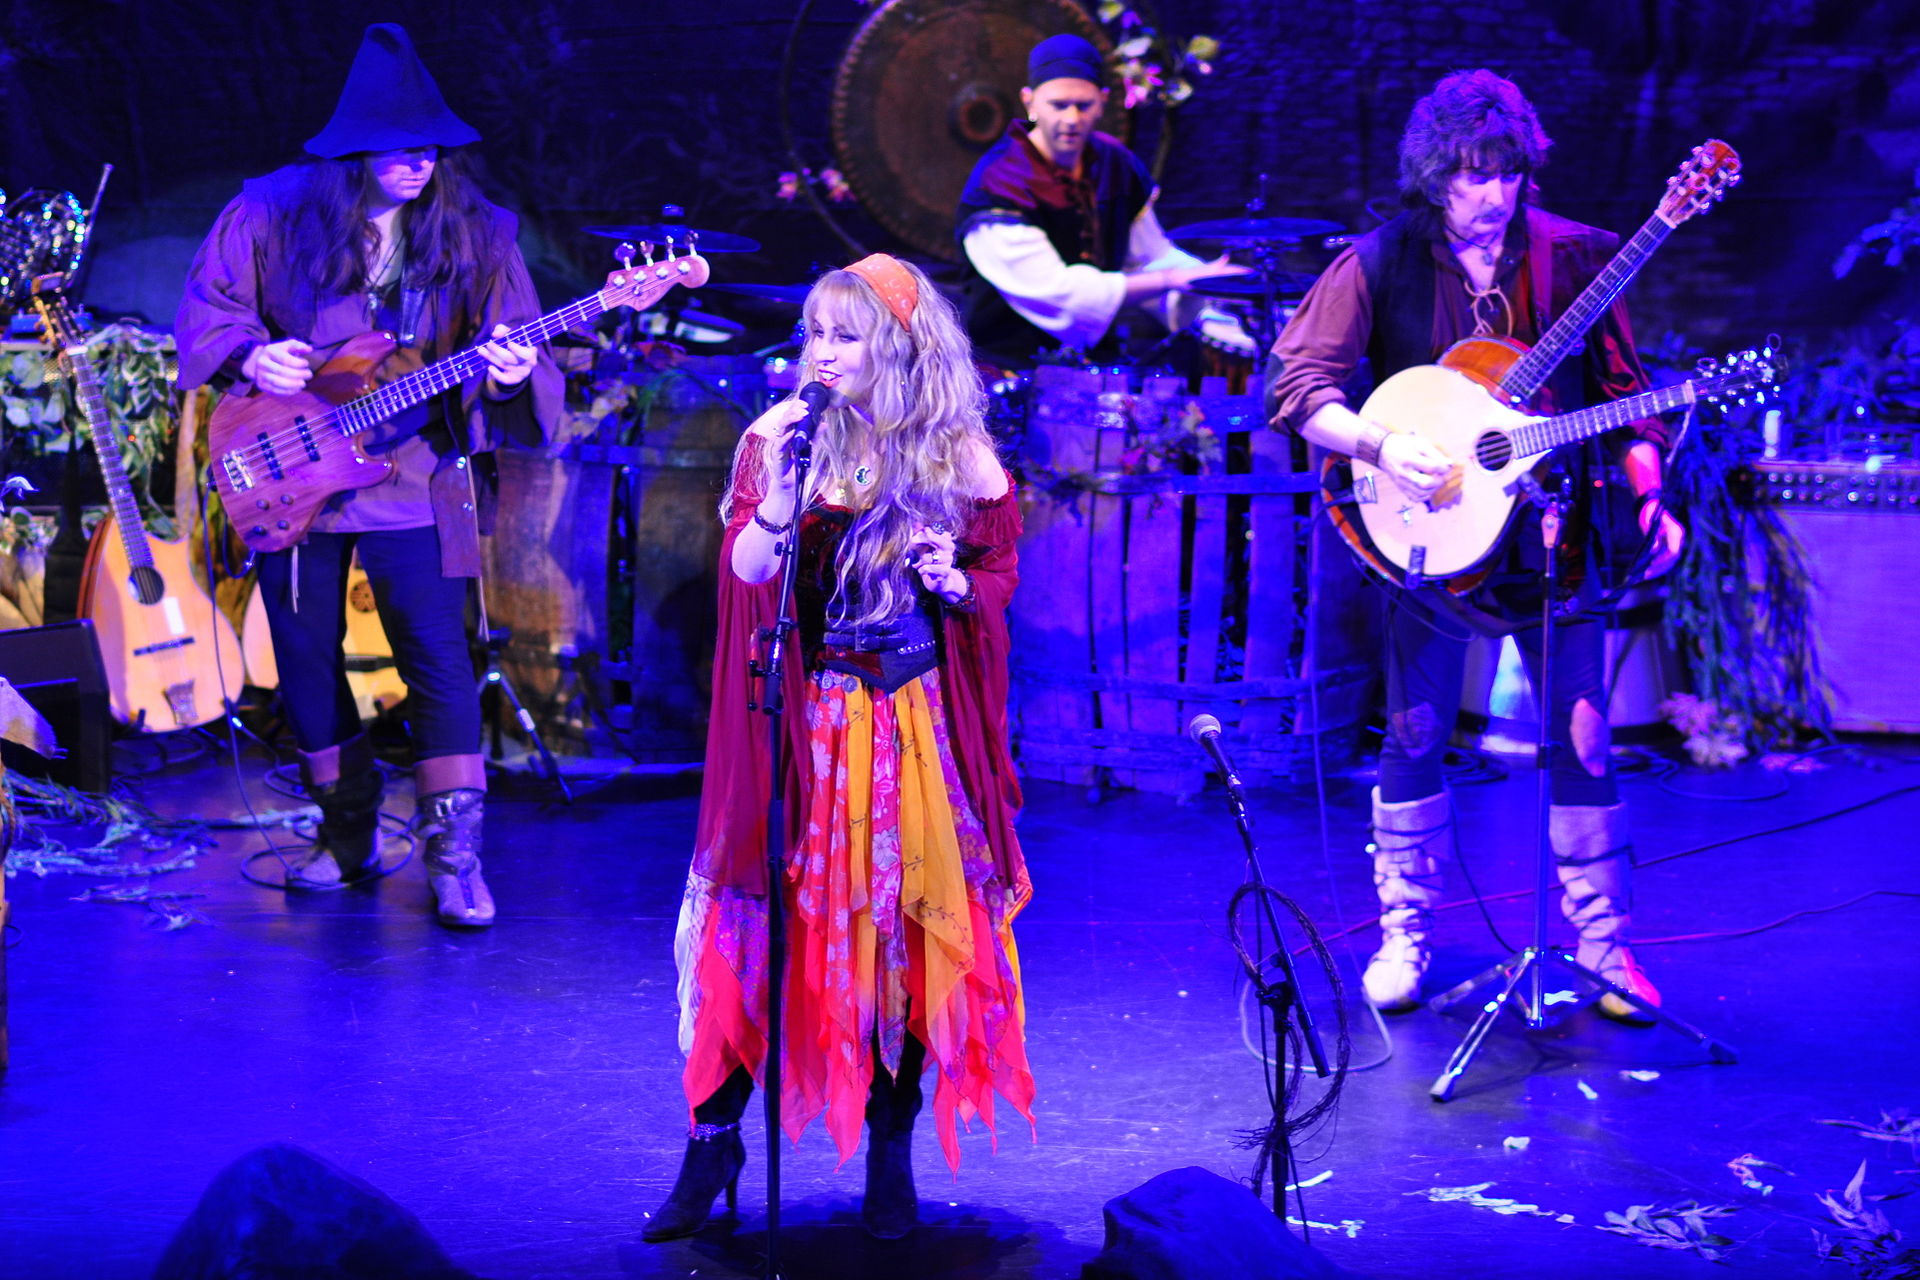 1920px-Blackmore's_Night_in_2012.jpg